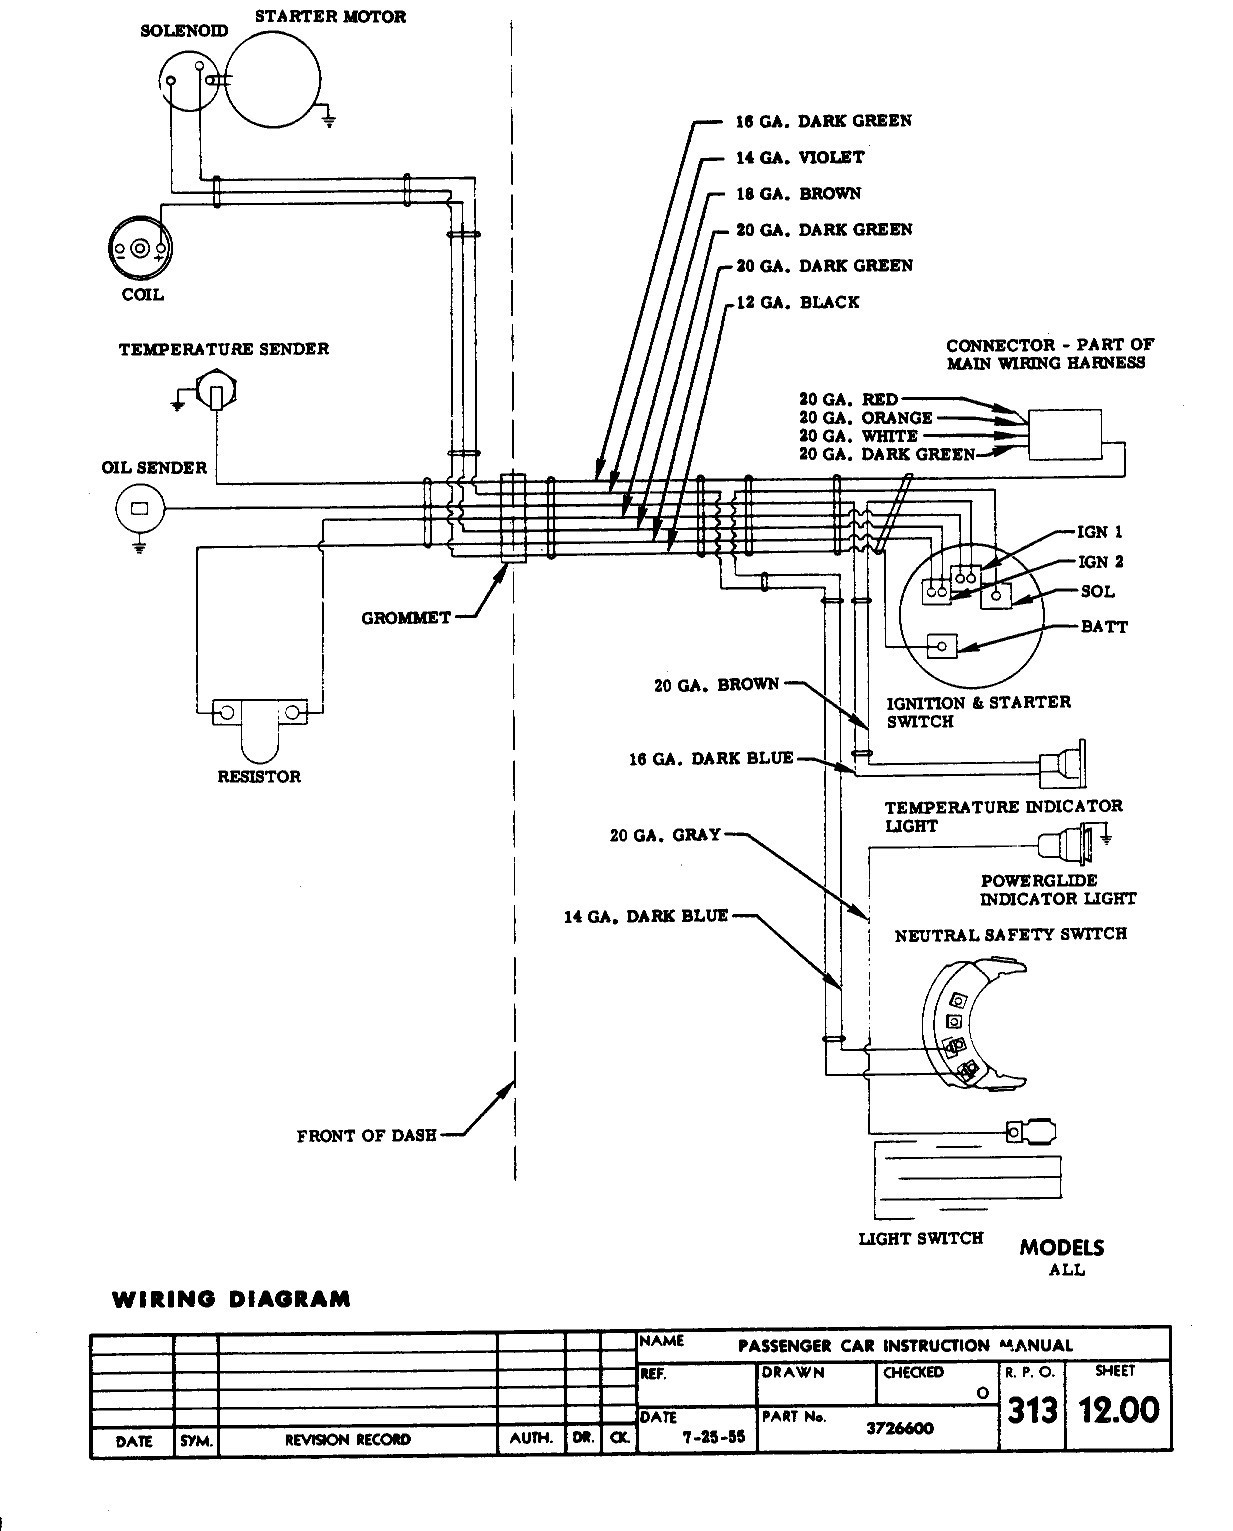 Wiring Diagram 79 Chevy Van And Schematics 1979 C10 Truck Harness Trusted Diagrams U2022 Rh Shlnk Co Engine